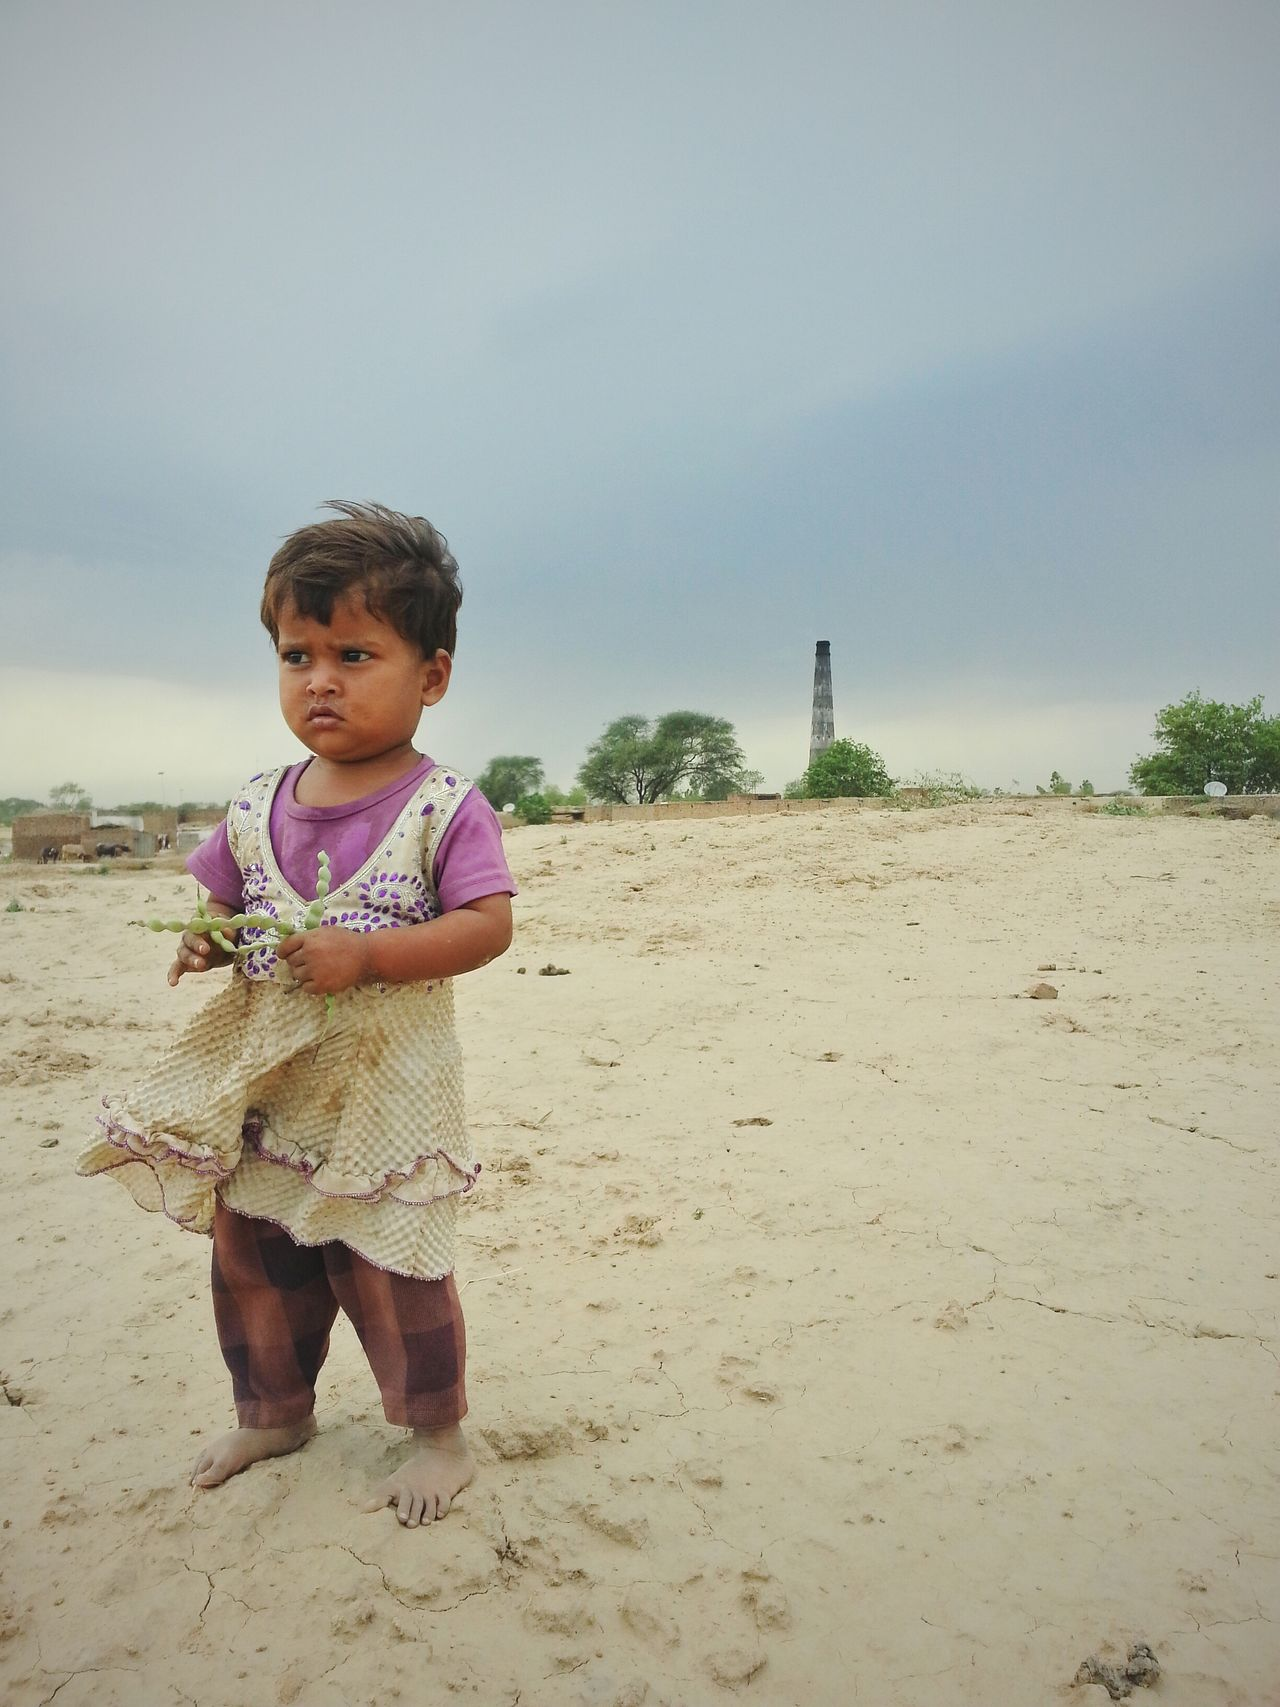 Art Is Everywhere Sand Children Only Full Length Childhood One Person Child People Summer Fun Beach Day Cute Standing Outdoors Portrait Sky Happiness Males  Smiling One Boy Only Poor Children Poor Life Poor Kid Helplessness The Photojournalist - 2017 EyeEm Awards Place Of Heart